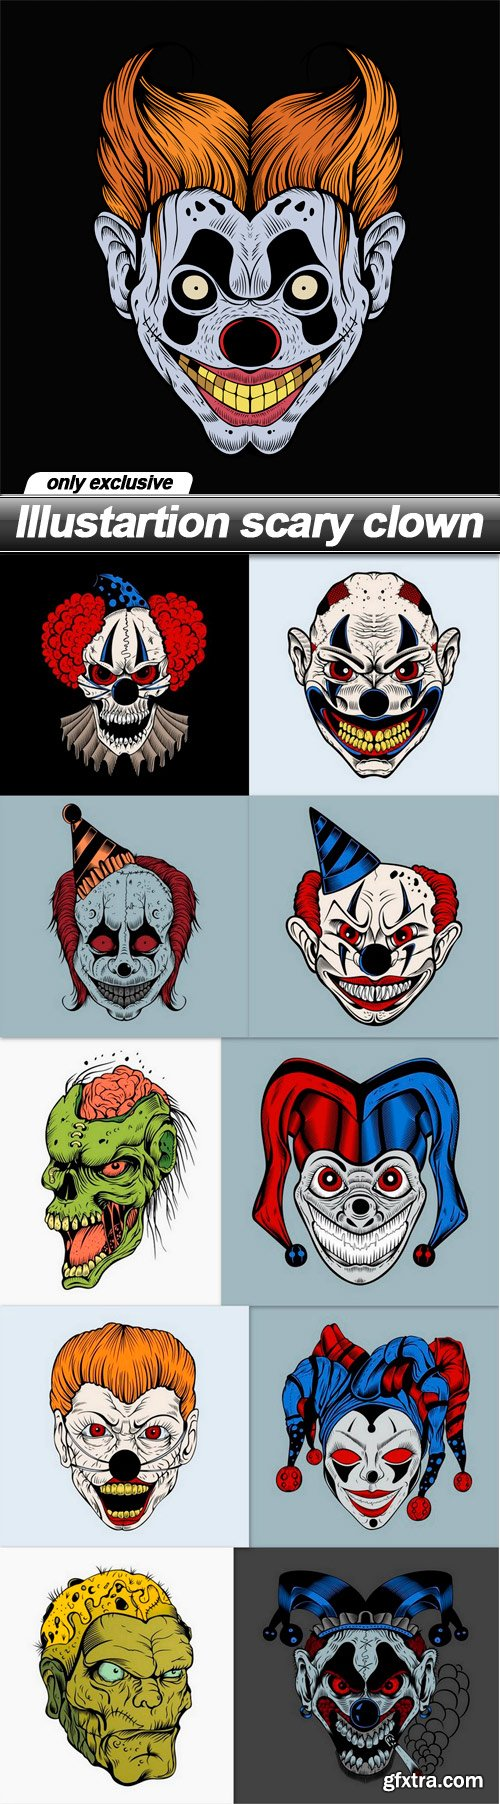 Illustartion scary clown - 11 EPS